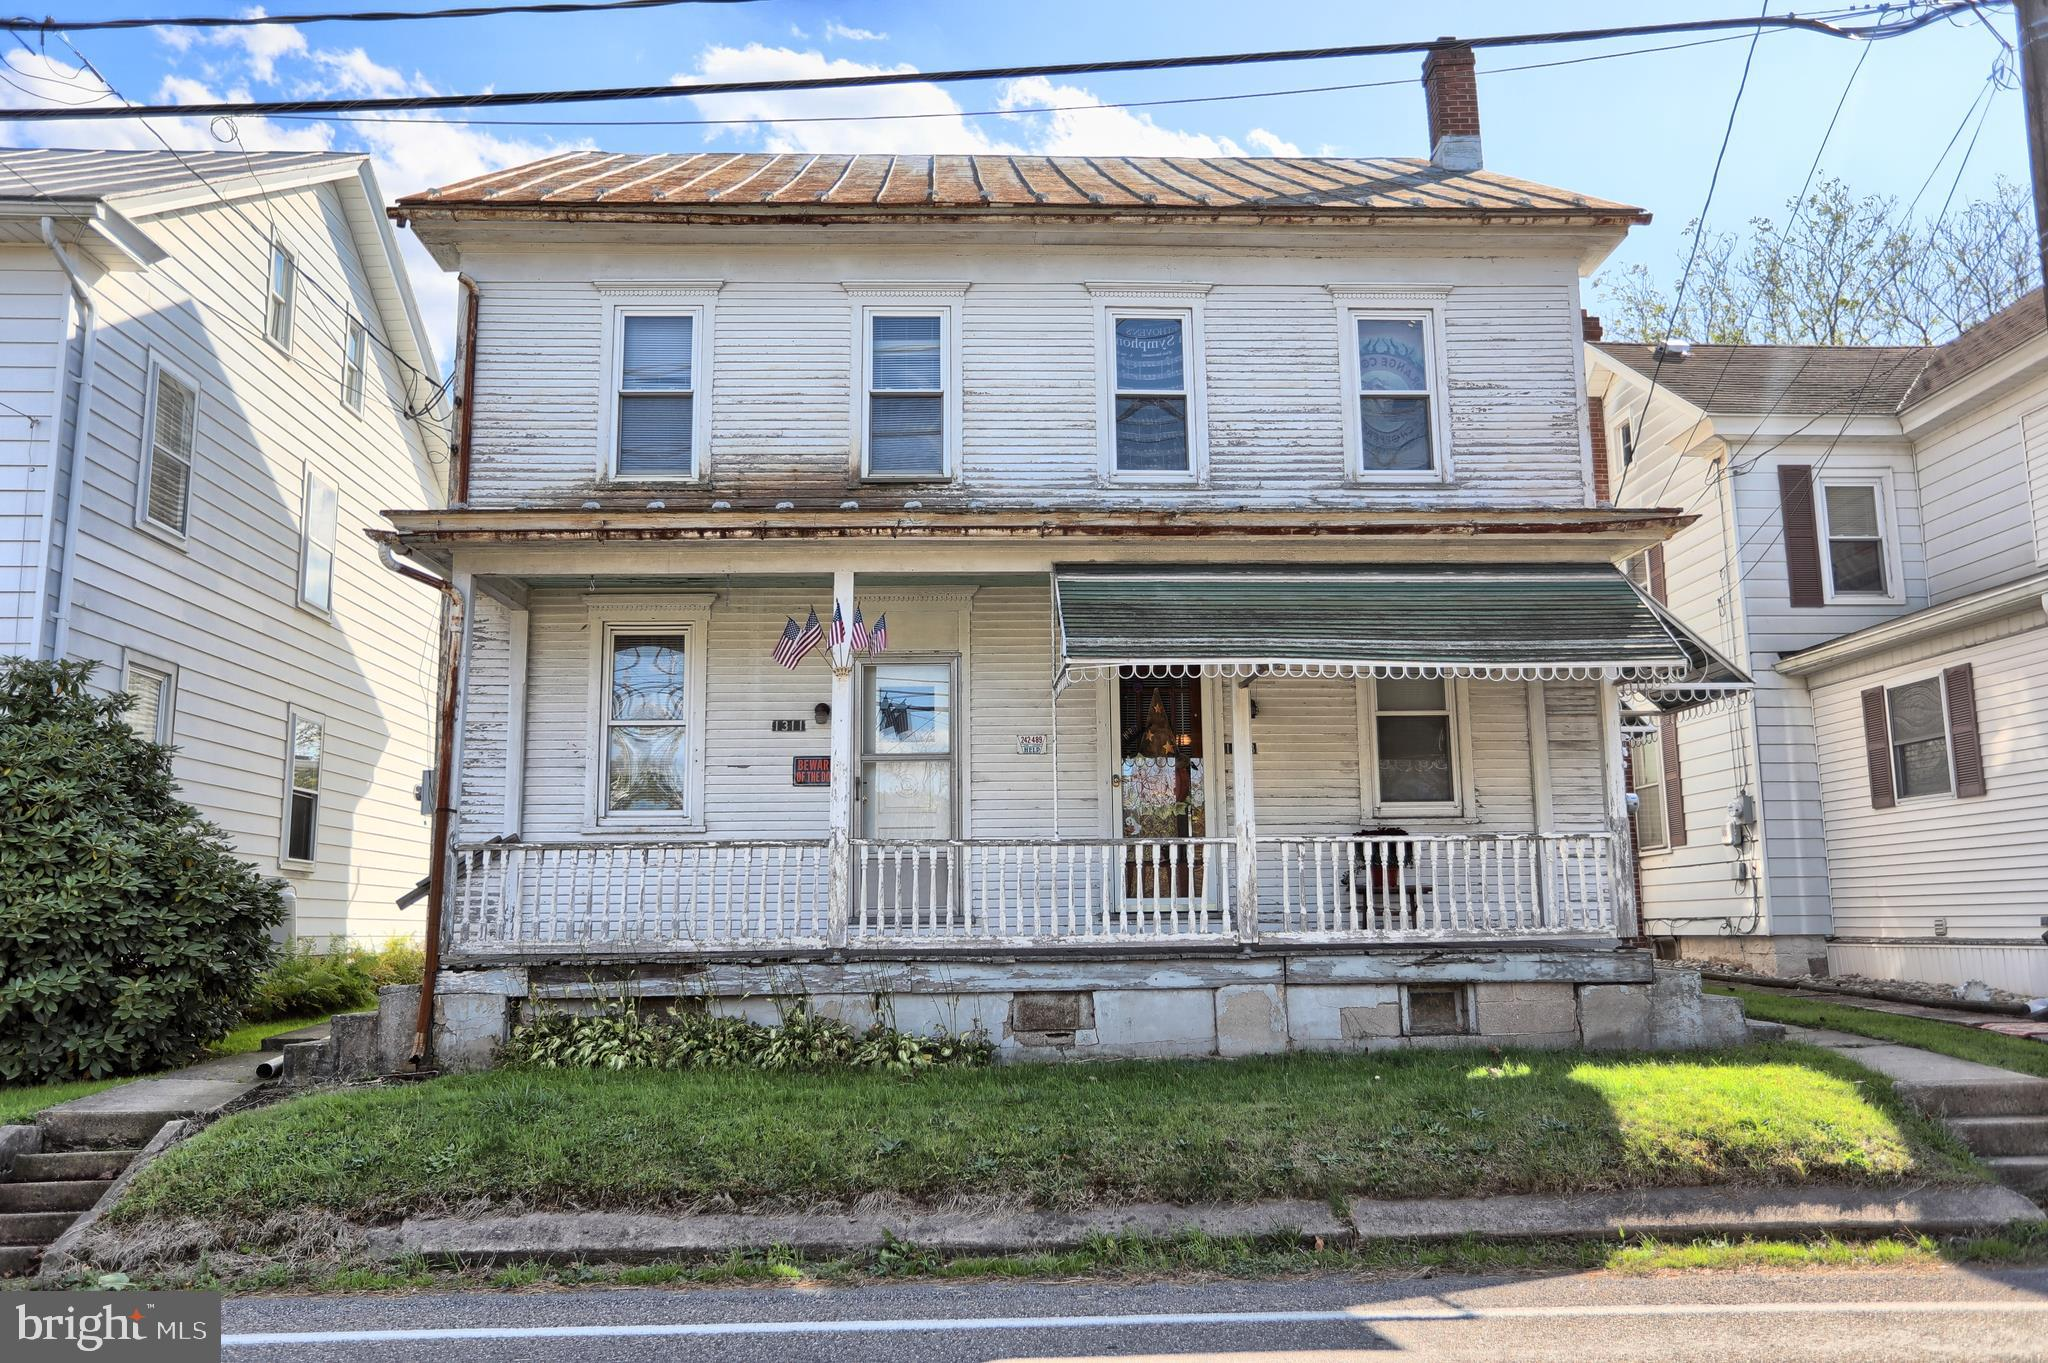 1311 W MAIN STREET, VALLEY VIEW, PA 17983